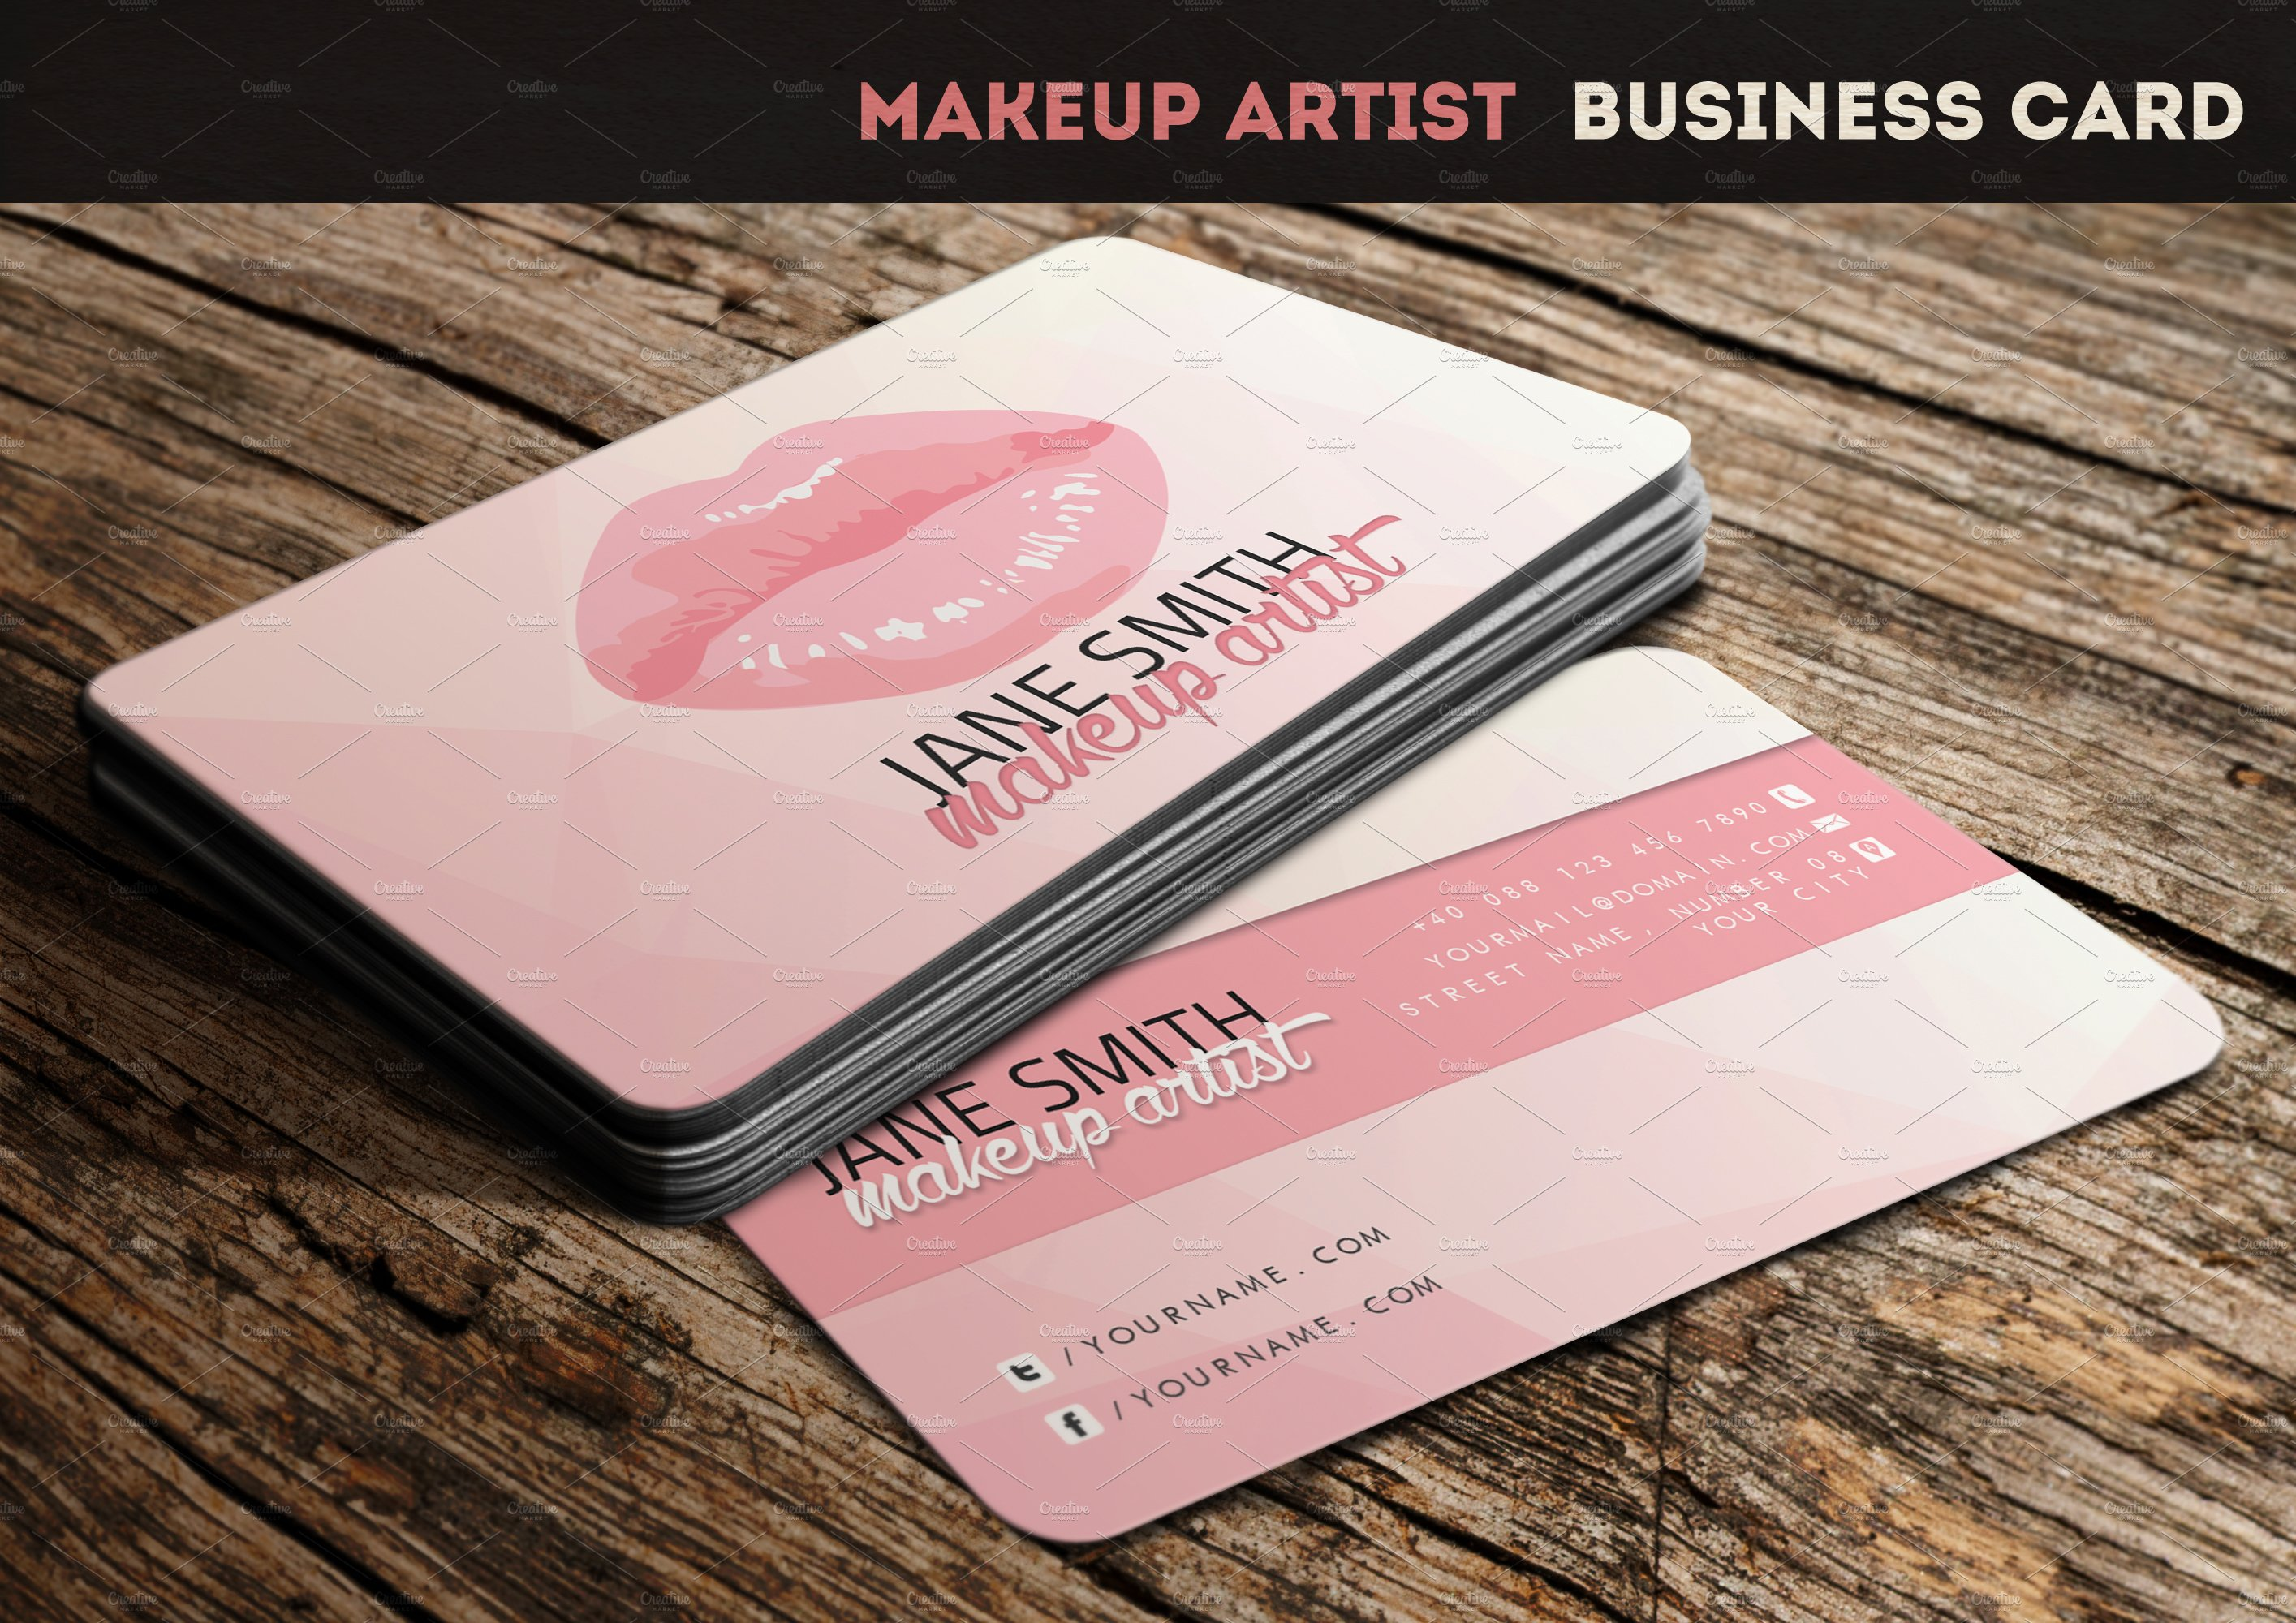 Makeup artist business card business card templates creative market reheart Images